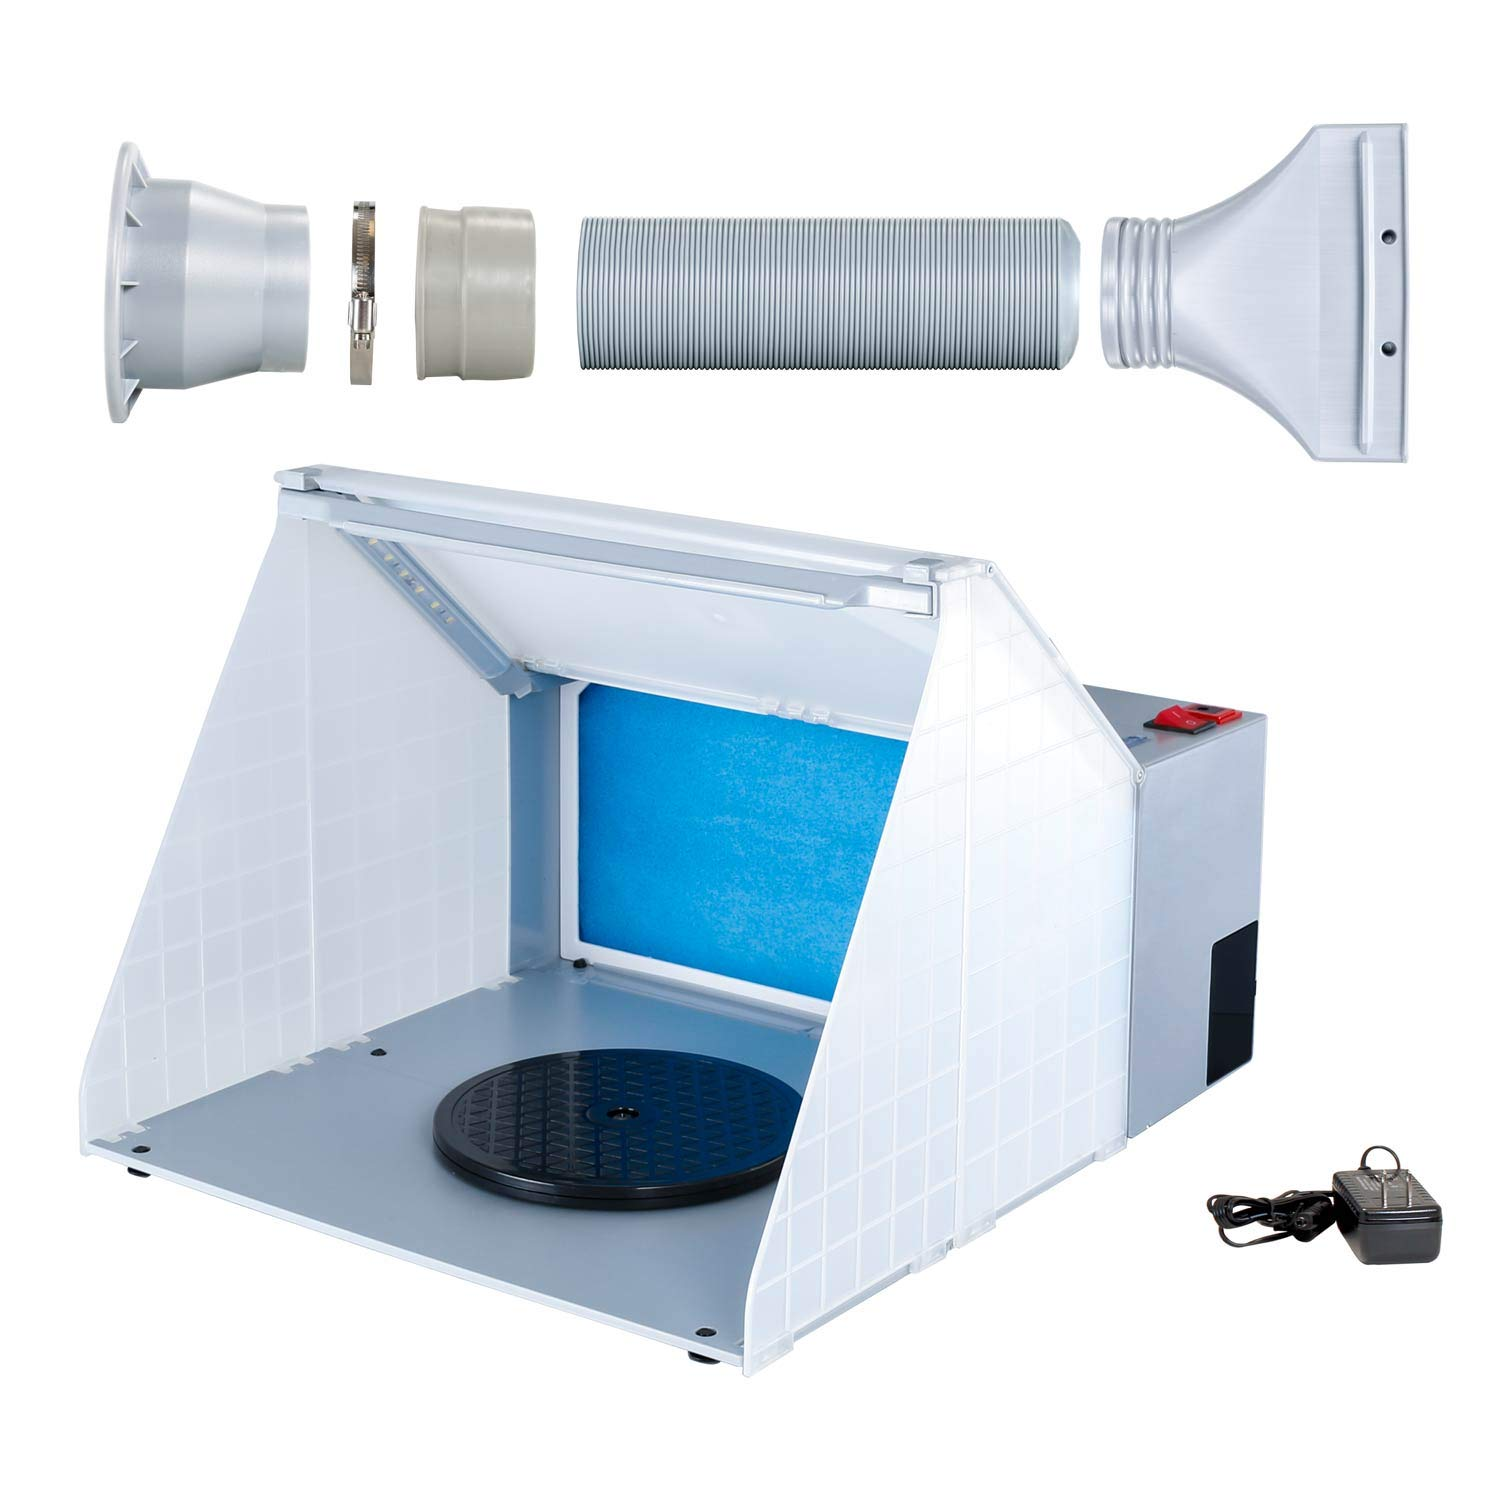 Master Airbrush Brand Lighted Portable Hobby Airbrush Spray Booth with LED Lighting for Painting All Art, Cake, Craft, Hobby, Nails, T-Shirts & More. Includes 6 Foot Exhaust Extension Hose by Master Airbrush (Image #1)